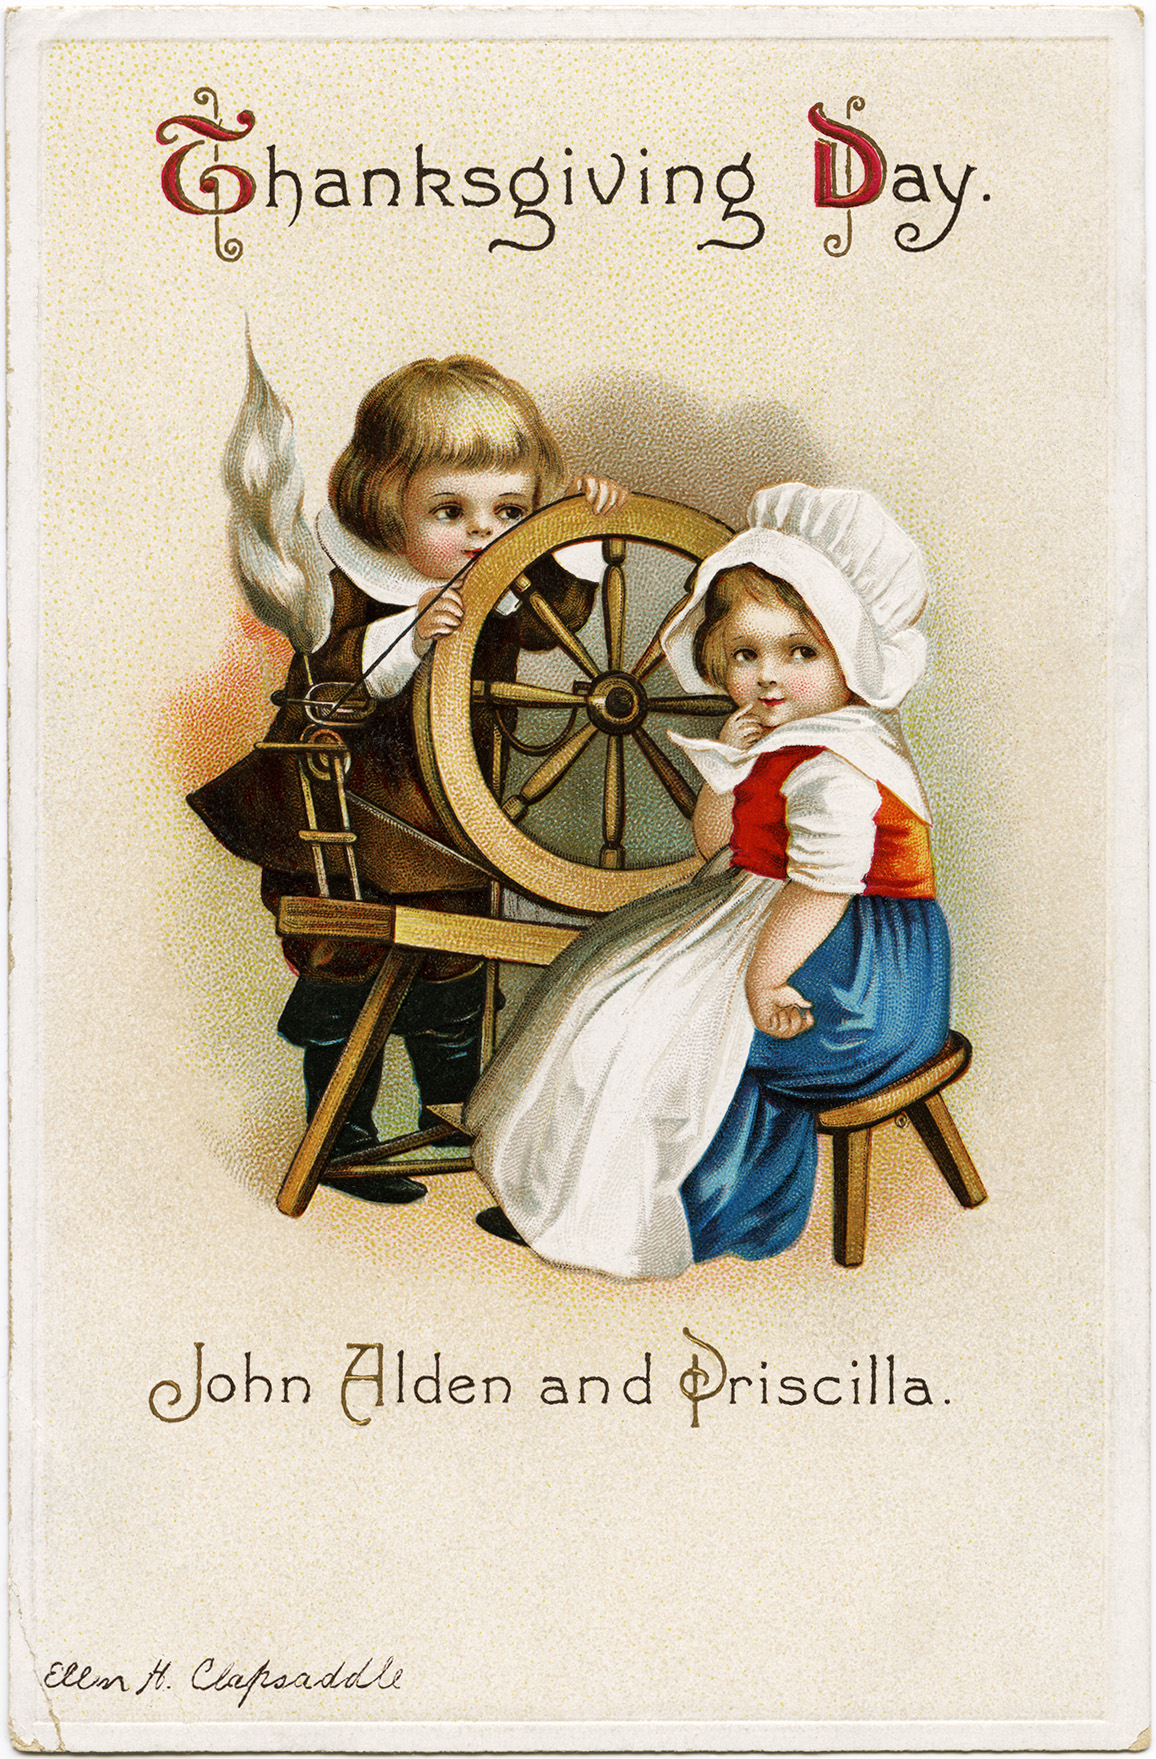 Free Vintage Clapsaddle Thanksgiving Postcard Graphic ~ John Alden and Priscilla